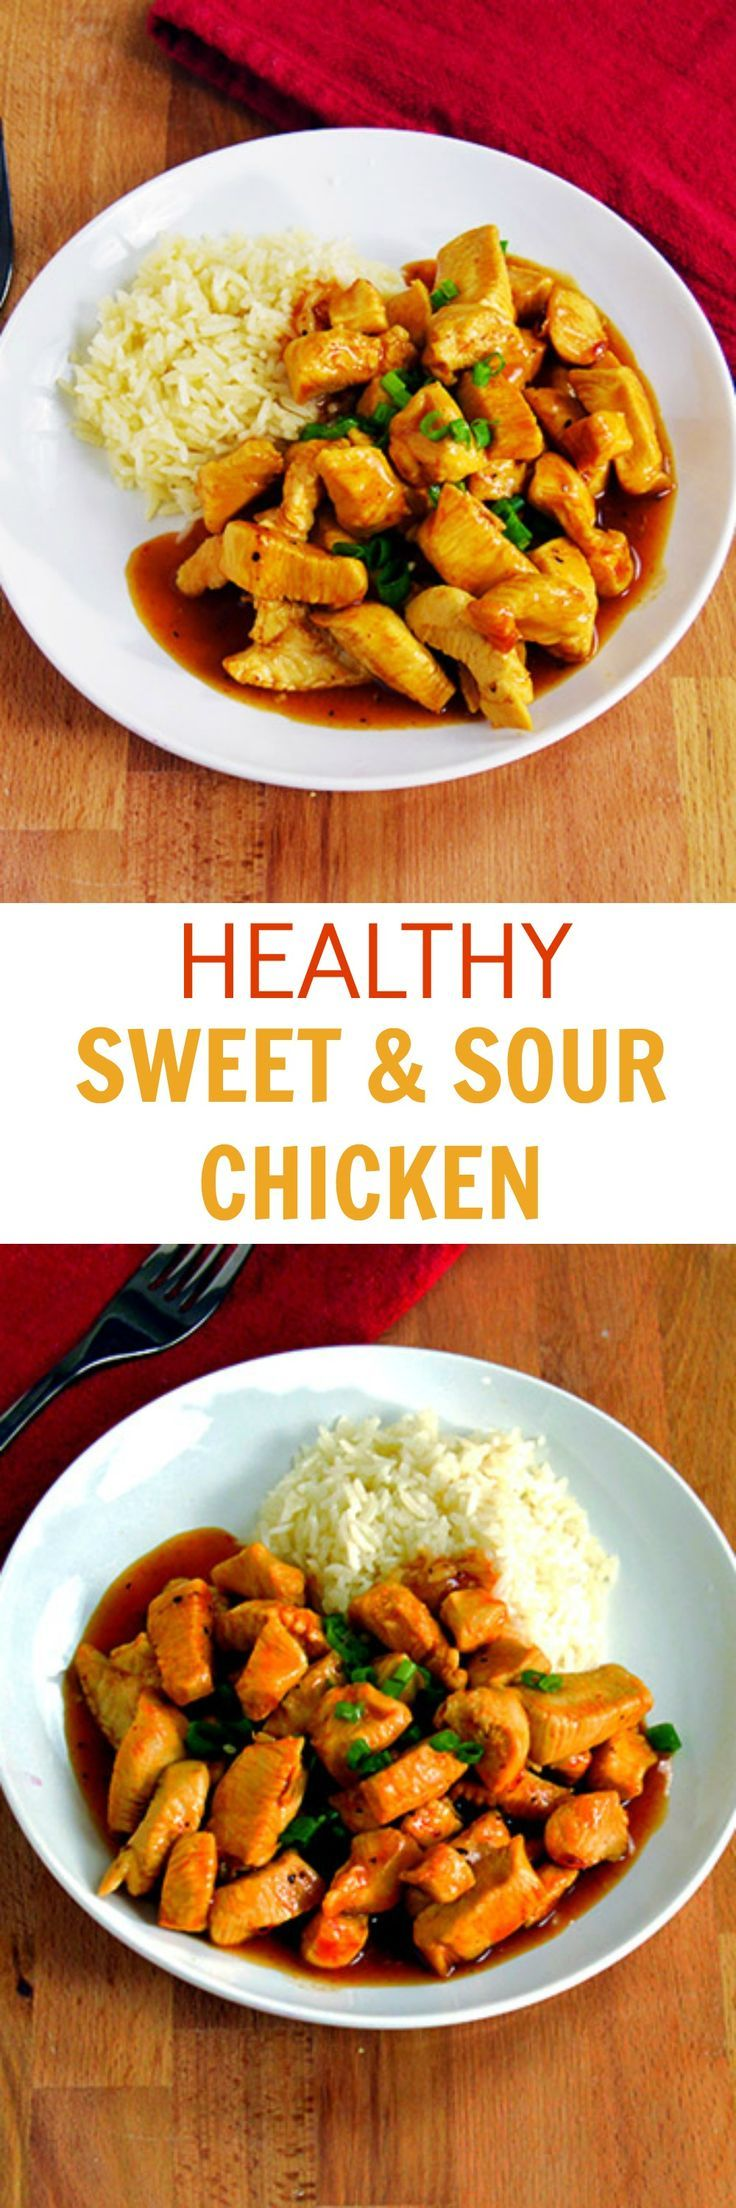 Healthy Sweet & Sour Chicken recipe made with ingredients you likely have already! This is a quick, healthy dinner option that the whole family can enjoy!